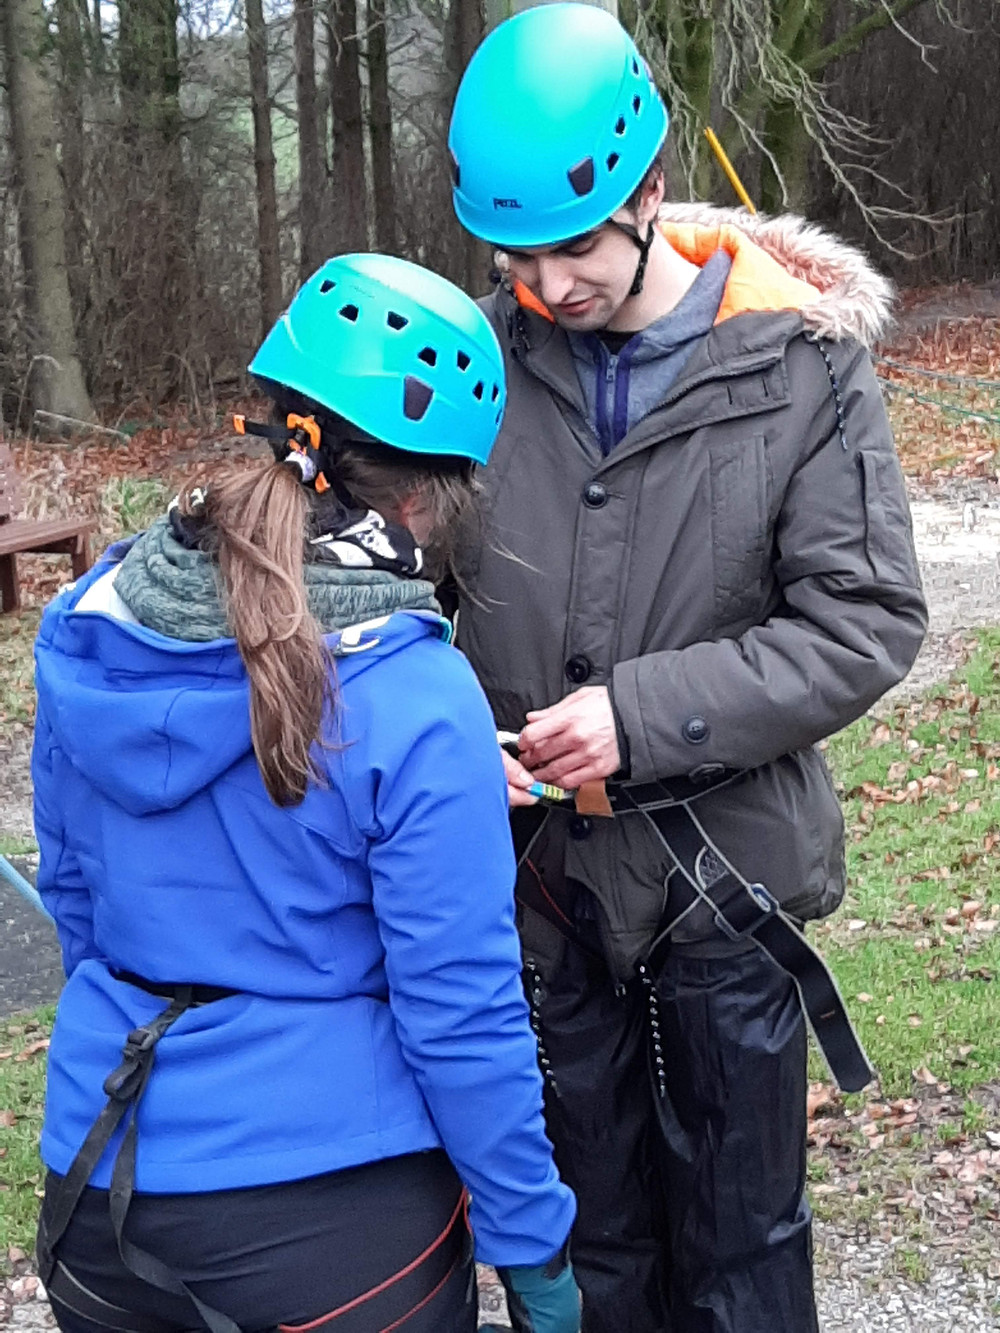 A female outdoor instructor strapping a service user into a harness.